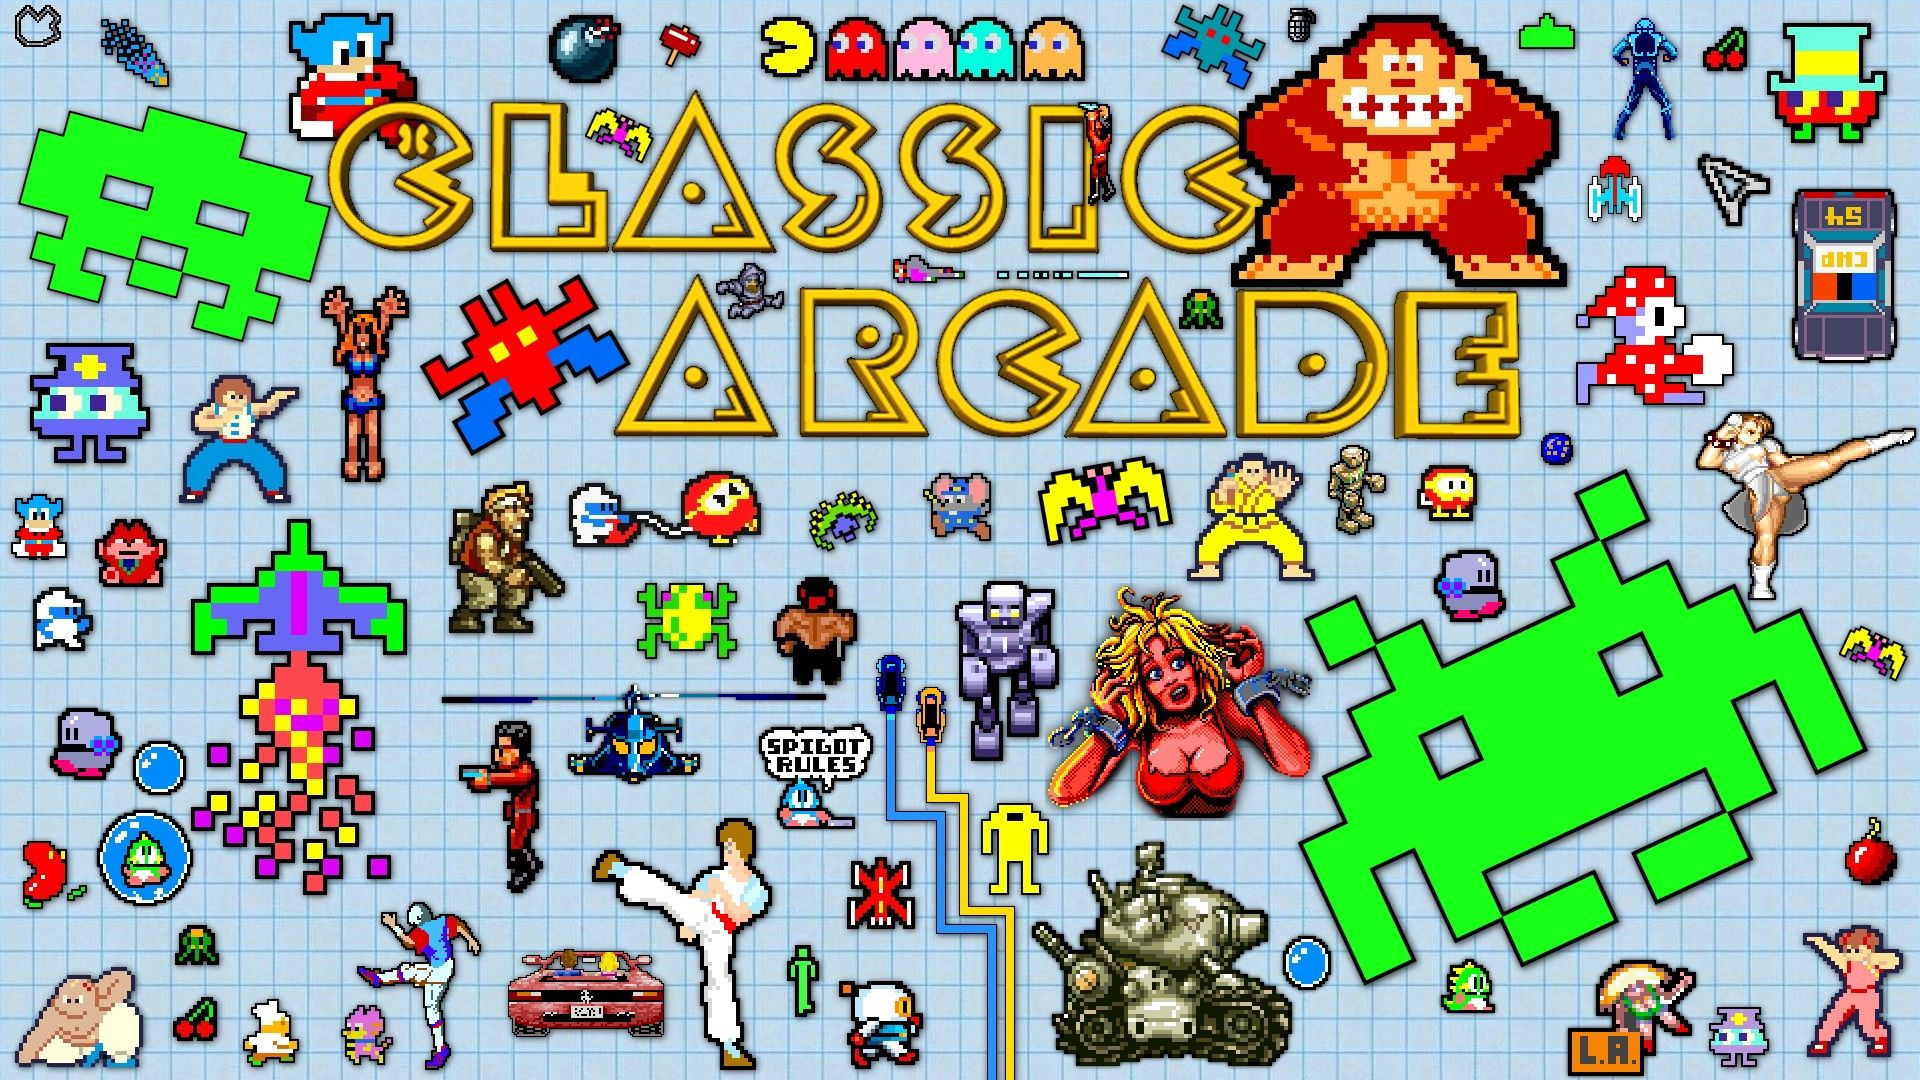 Arcade Wallpaper Decided To 1080 Fie My Arcade Classic Wallpaper Hope You Like It Classic Video Games Retro Games Wallpaper Retro Arcade Games